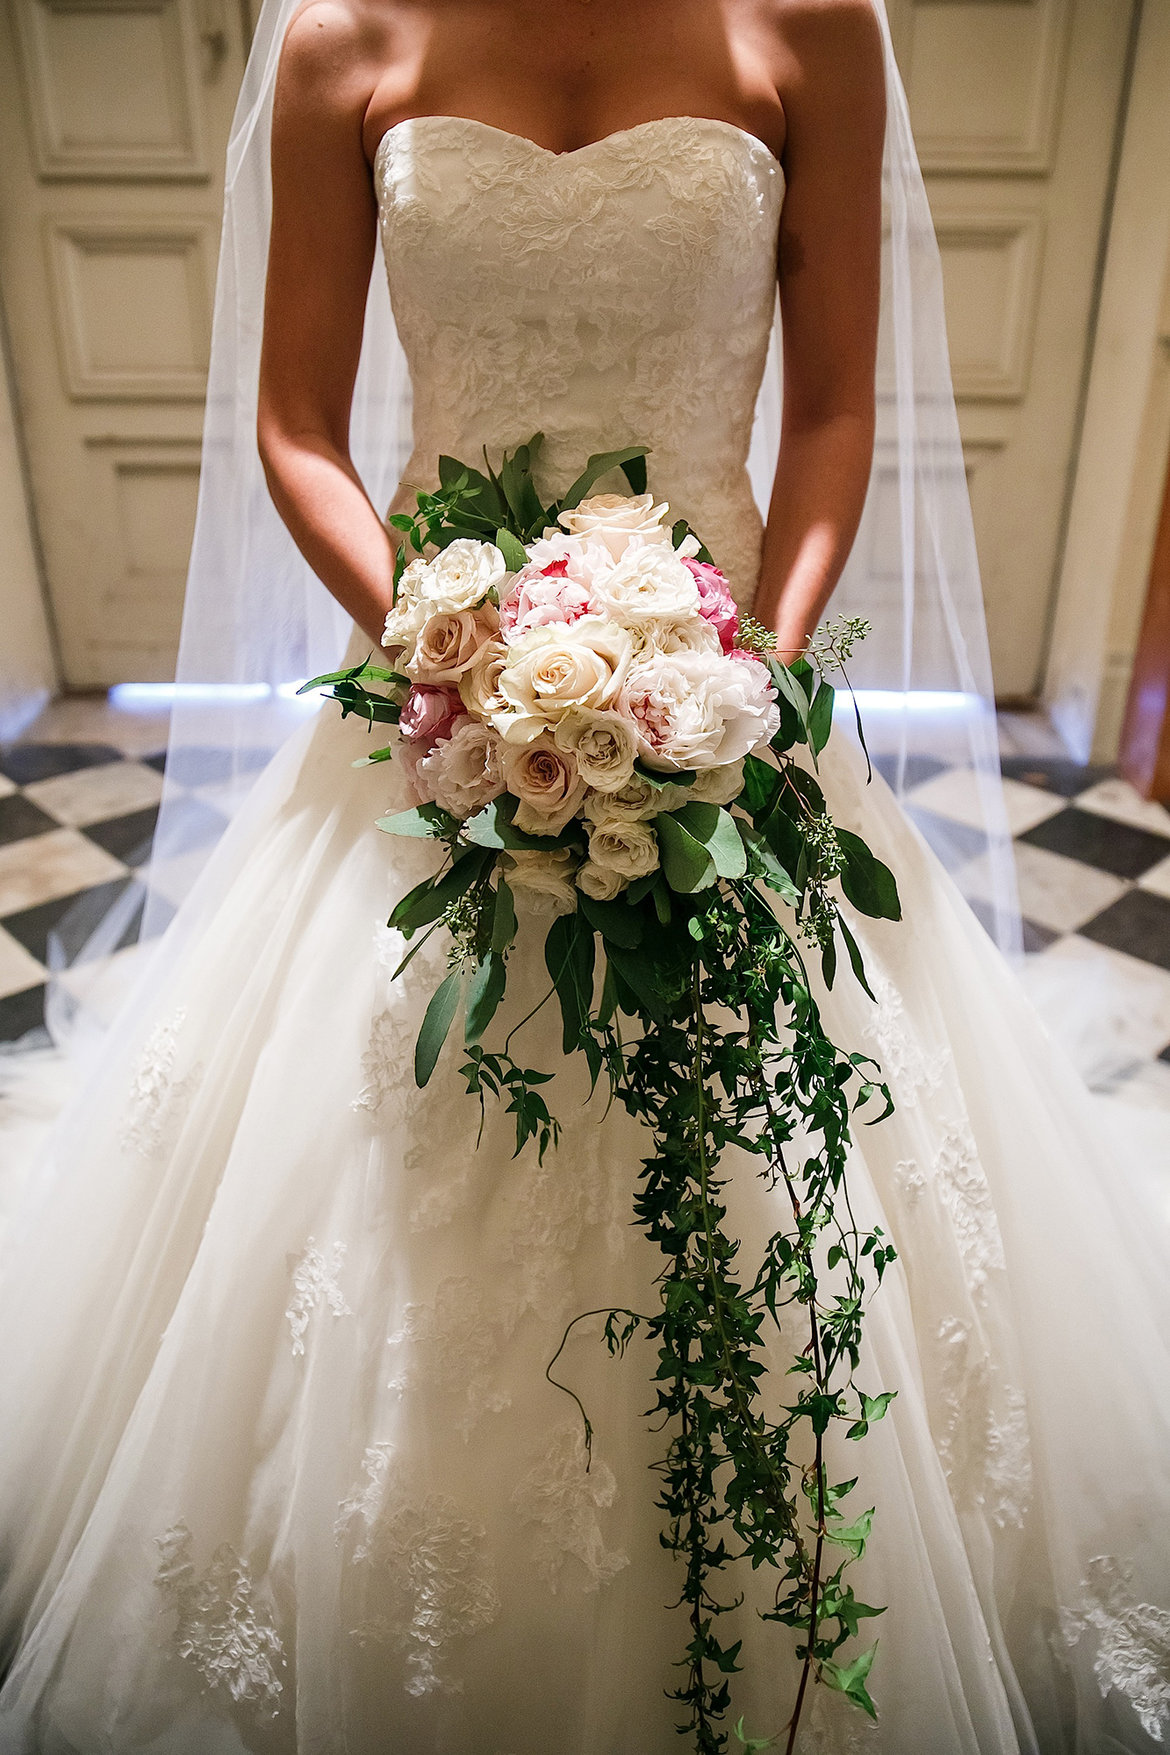 The Most Beautiful Ideas For Your Wedding Bouquet